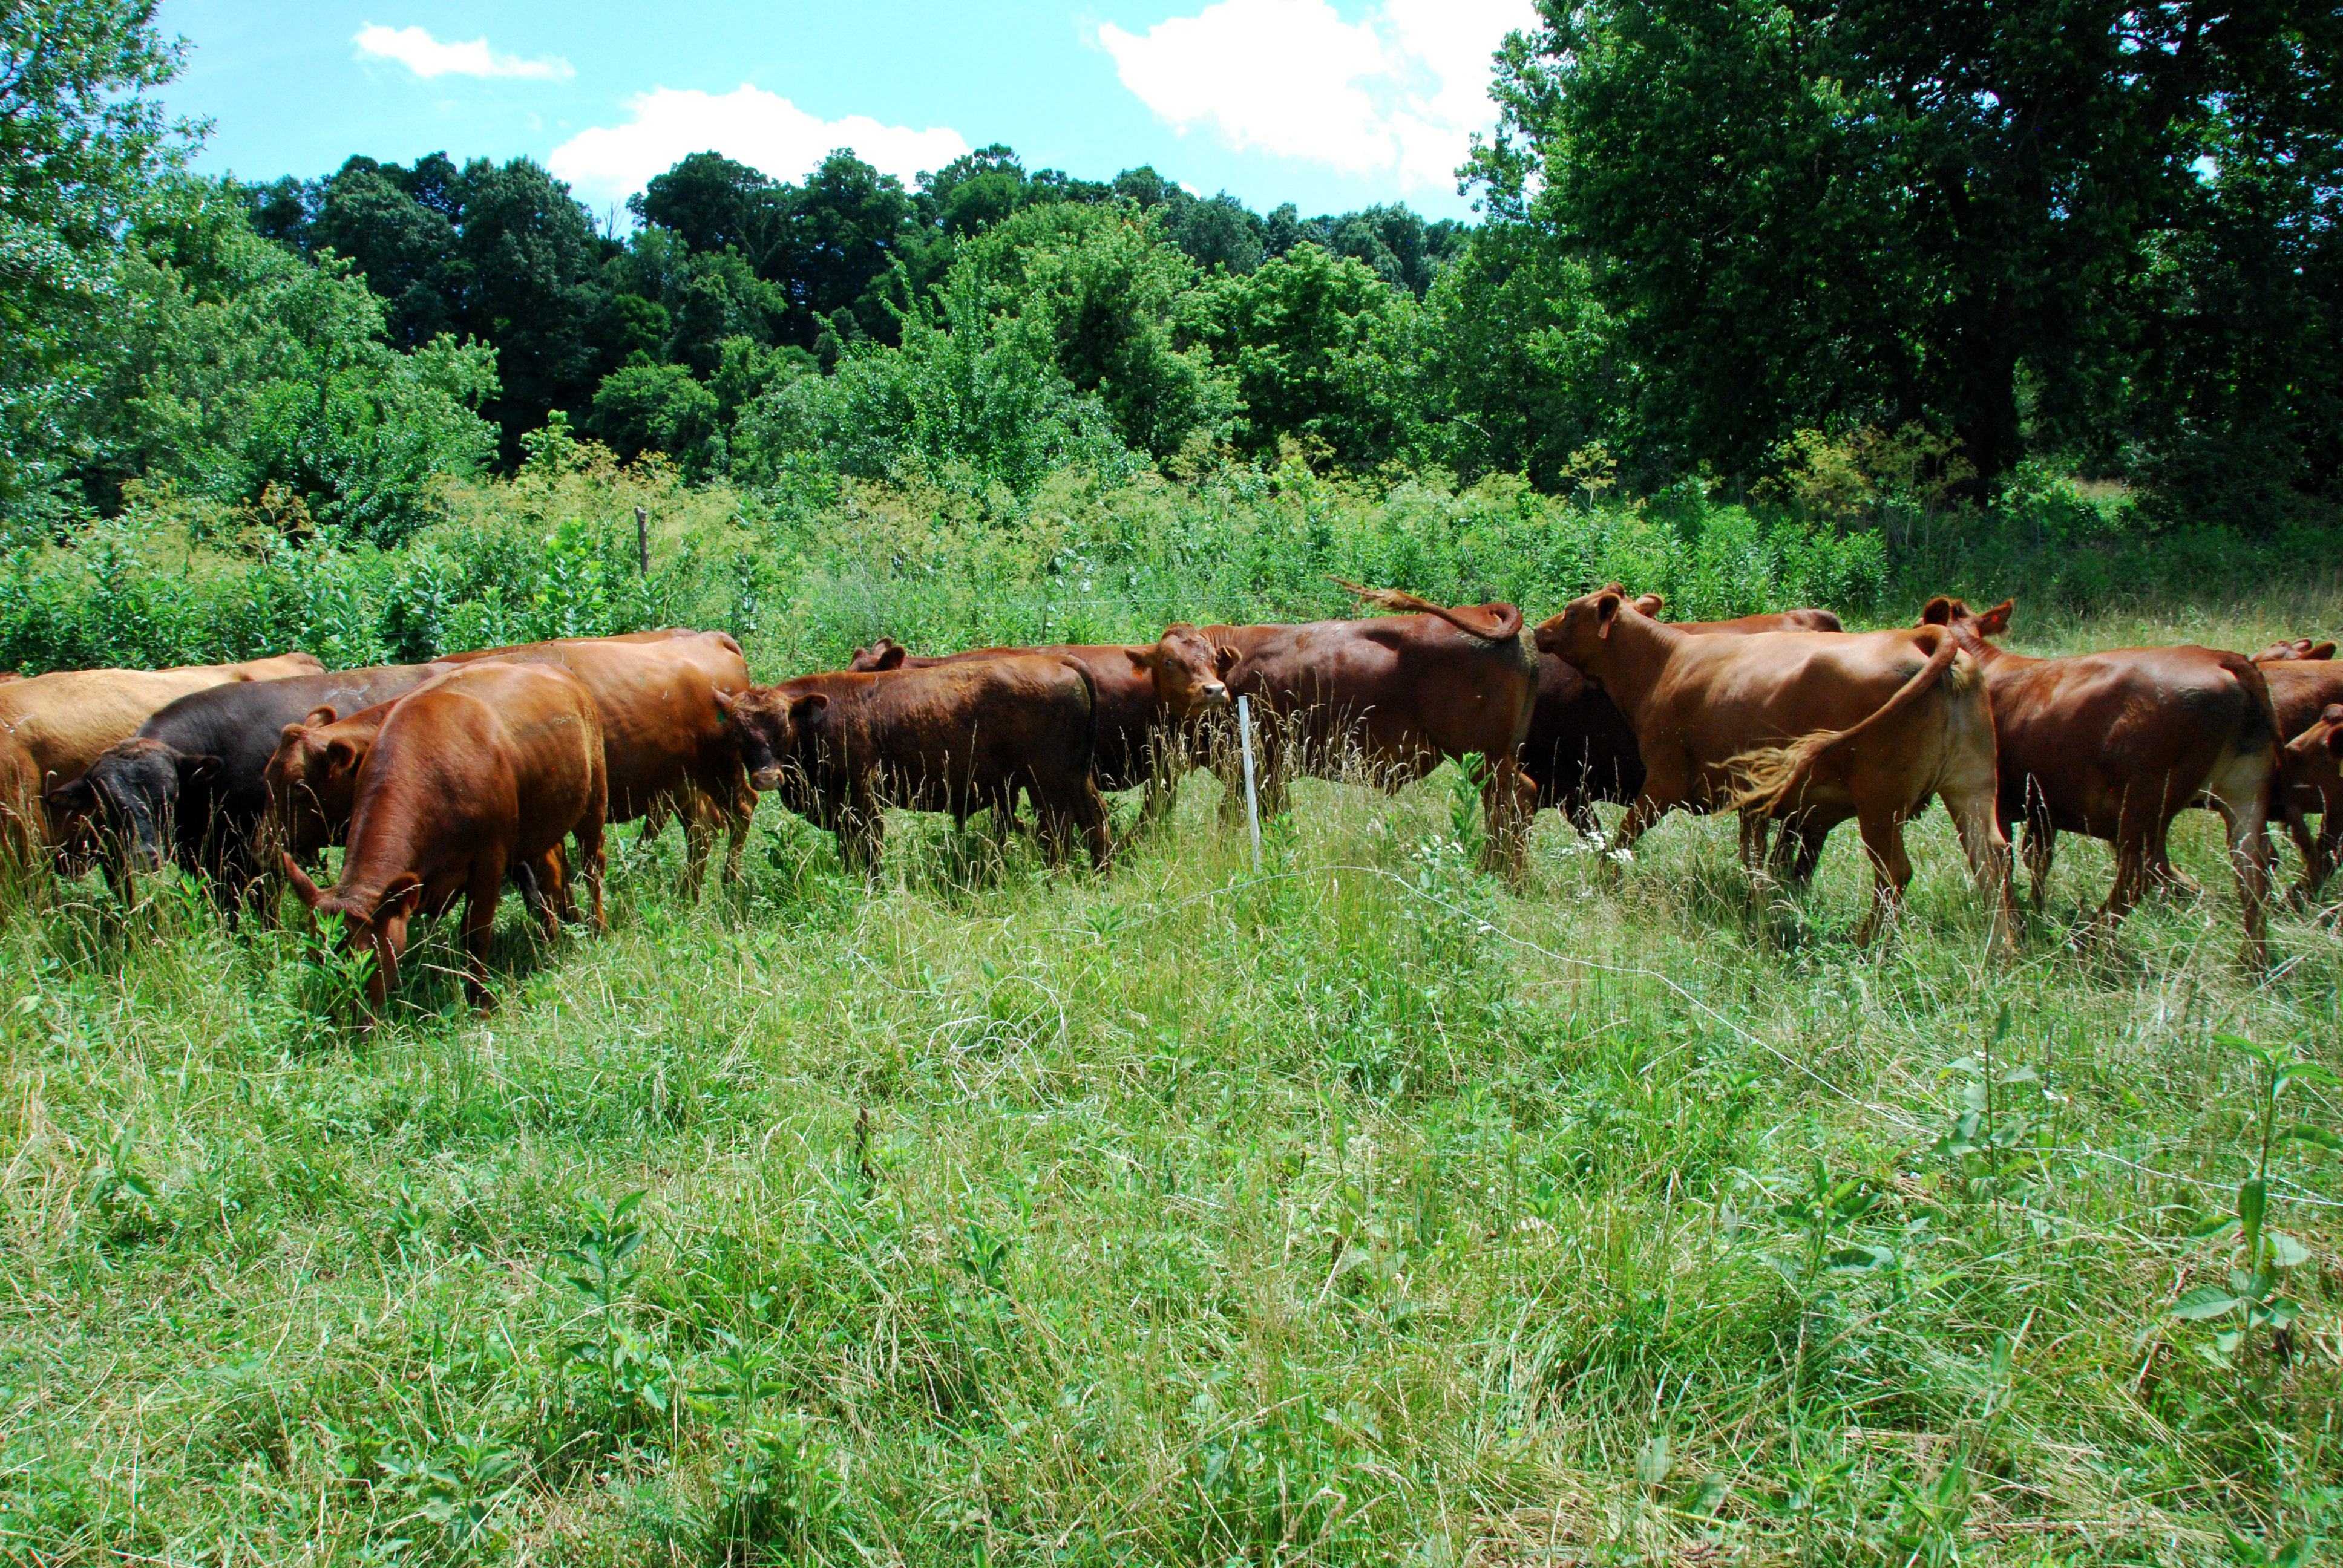 Boman's grazing system produces enough forage for a longer grazing season, only having to feed hay for two months instead of six.